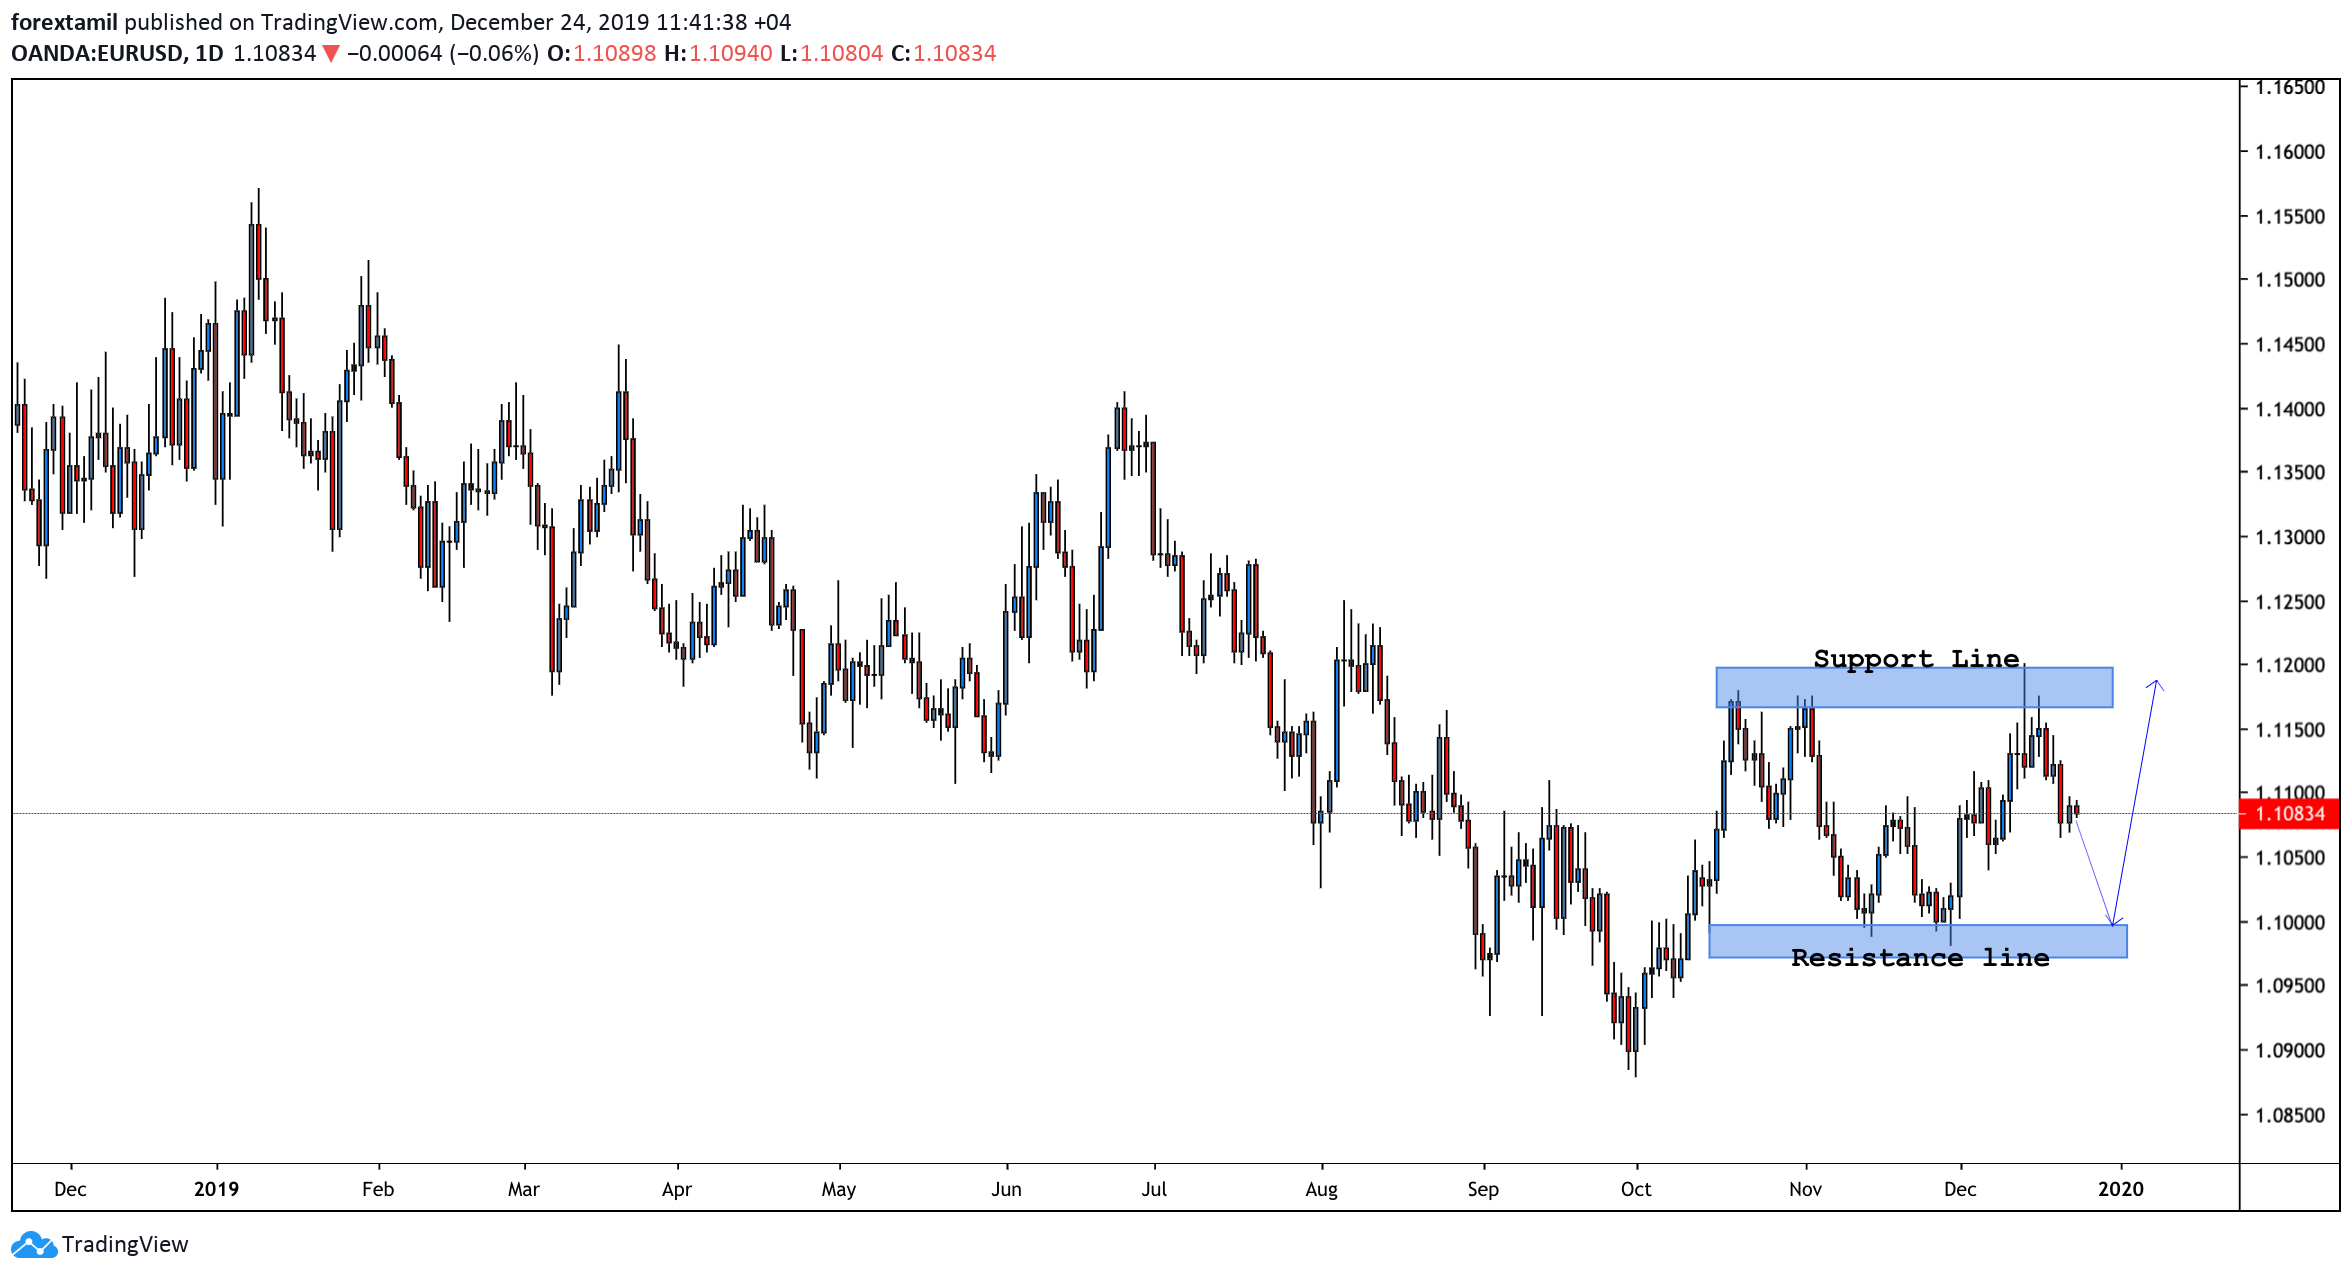 EUR/USD extends consolidation below 1.1100 in pre-Xmas thin conditions